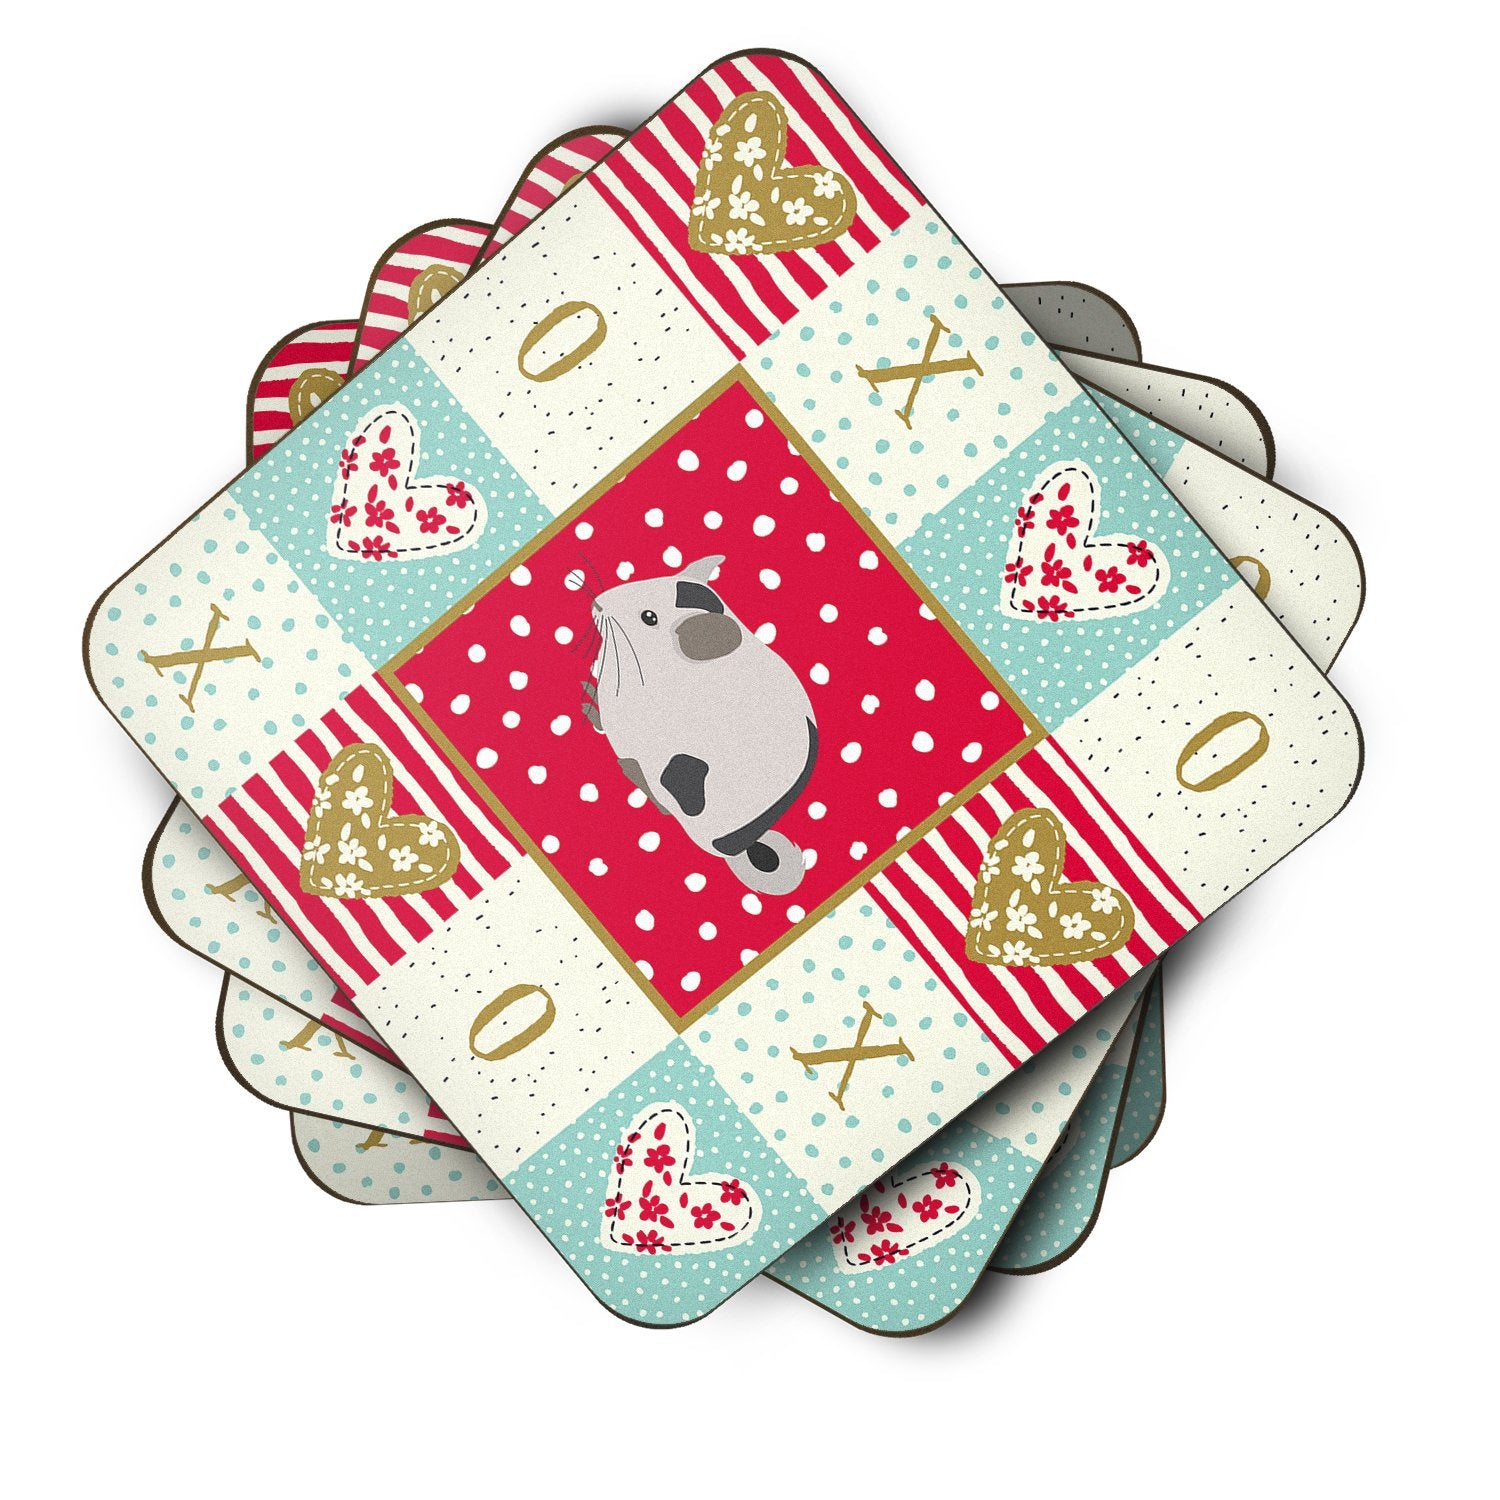 Set of 4 Mosaic Chinchilla Love Foam Coasters Set of 4 CK5423FC by Caroline's Treasures